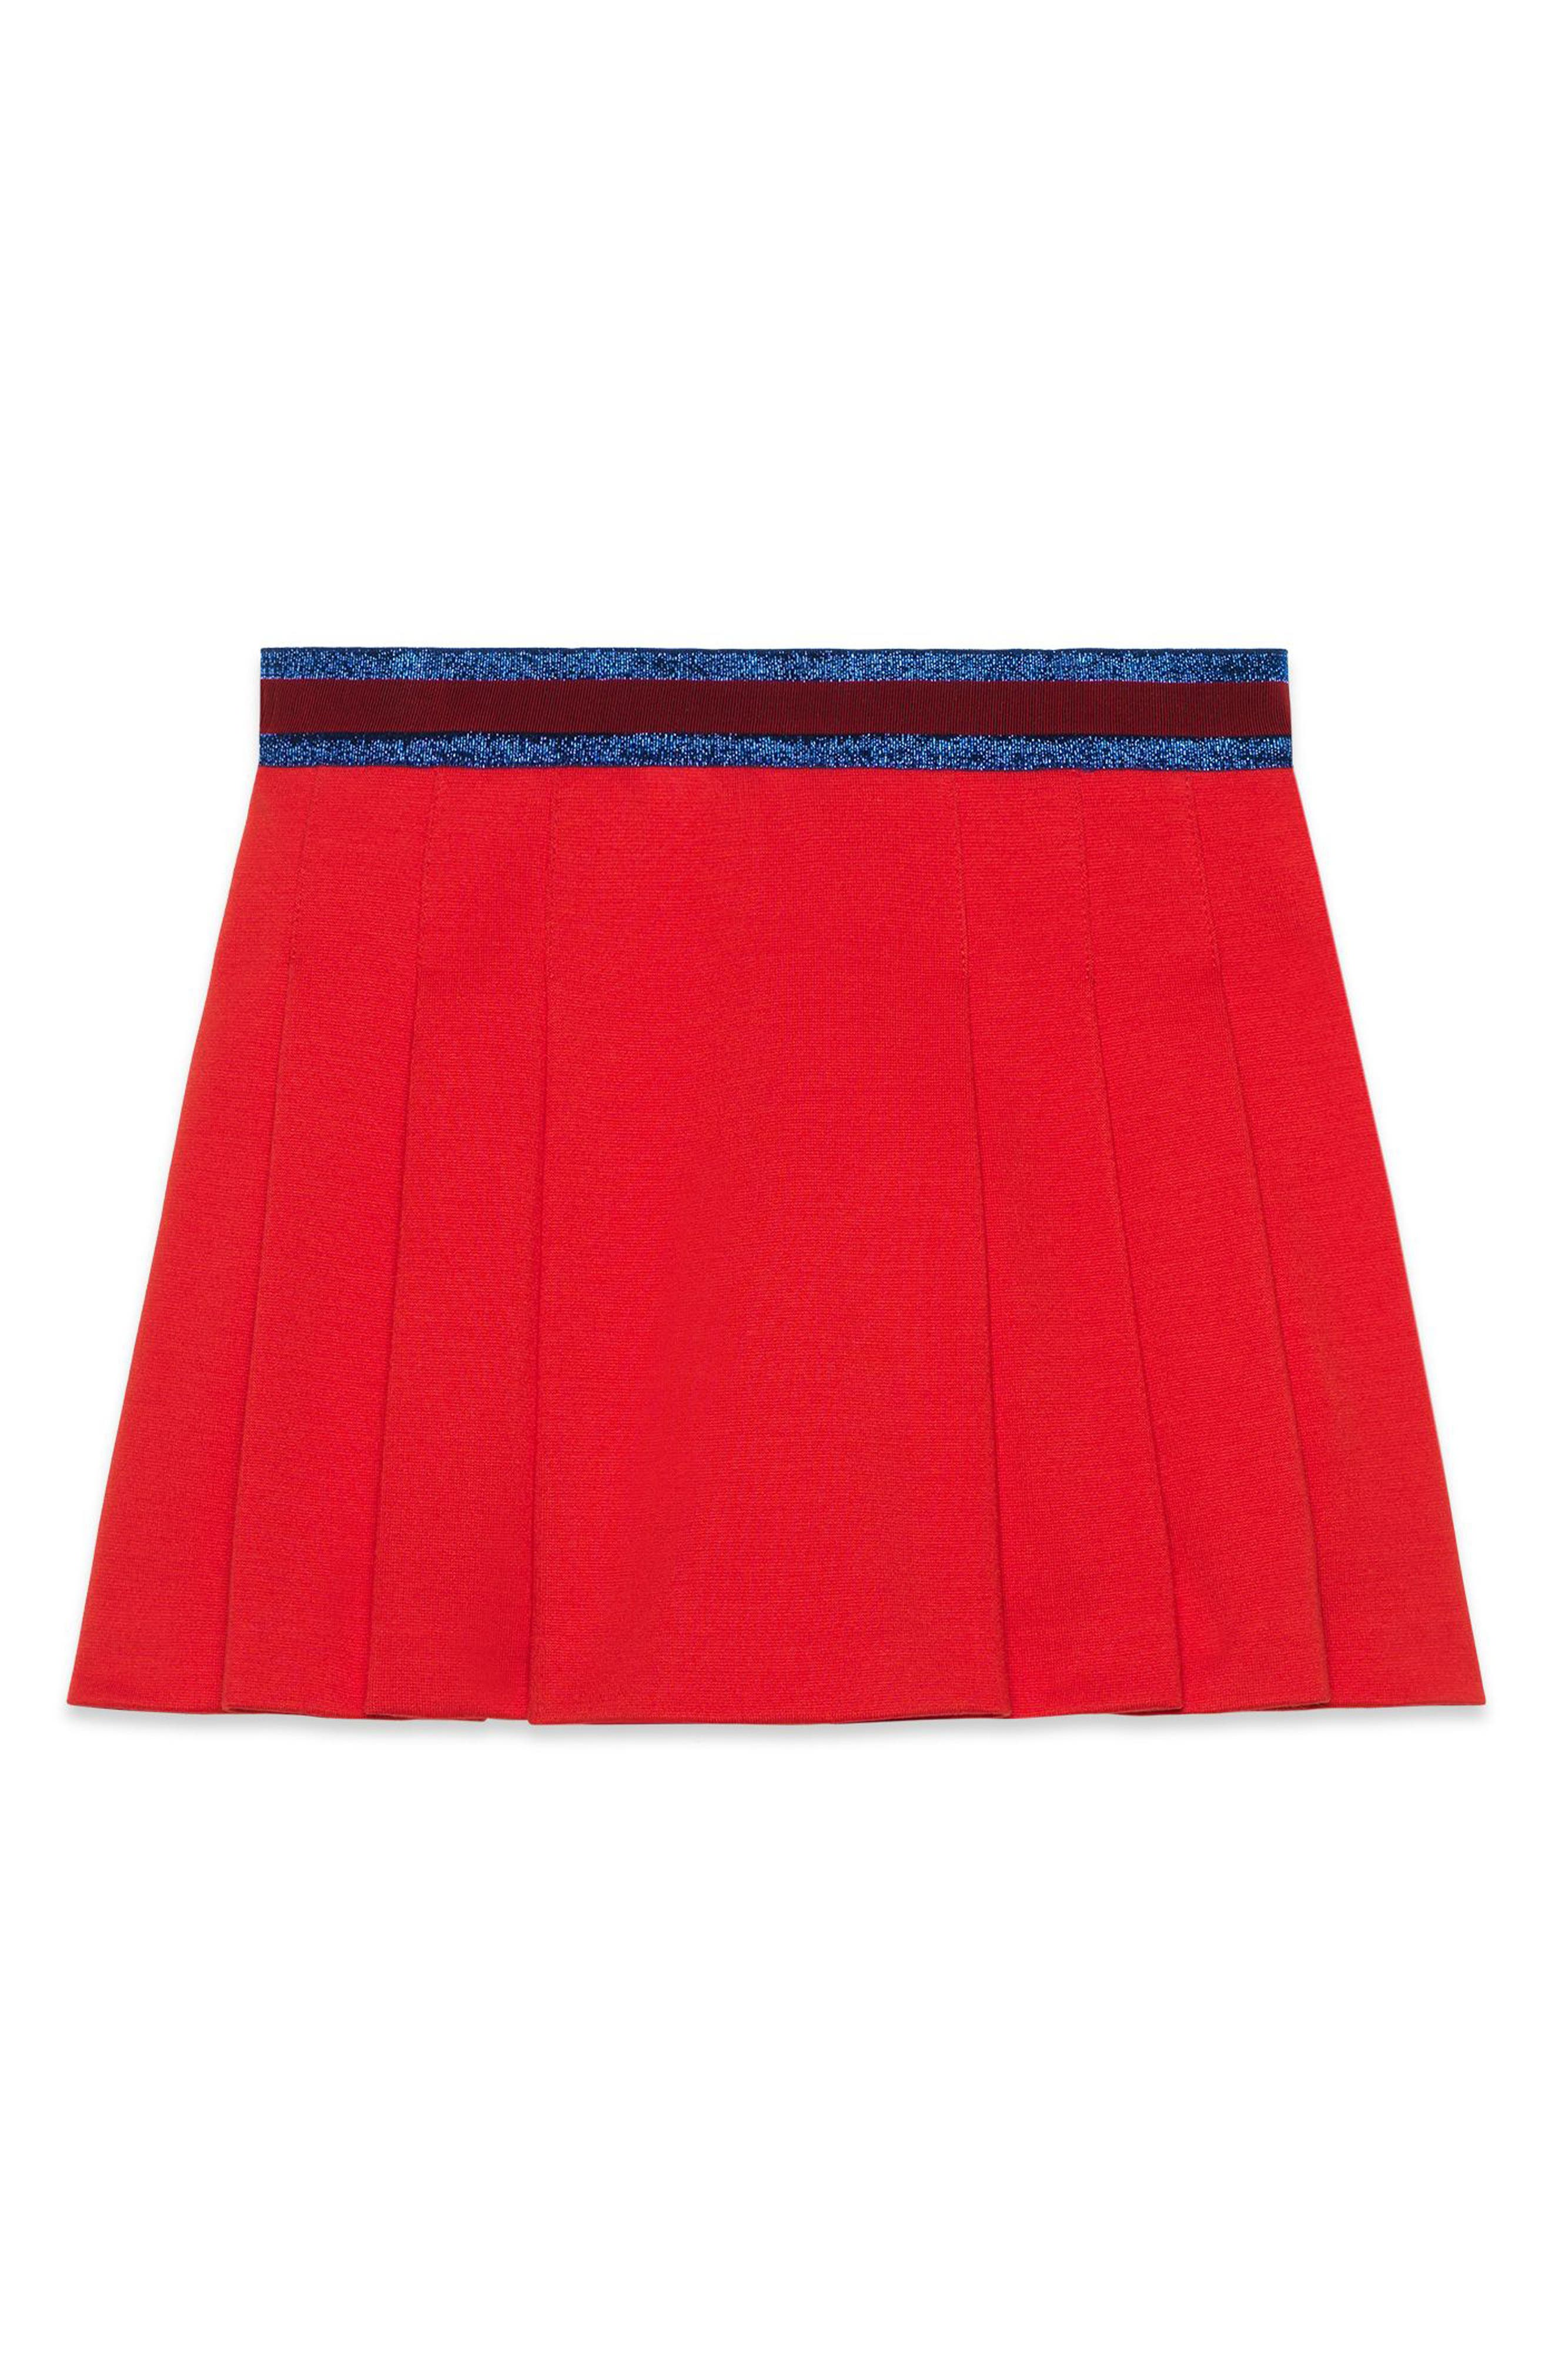 Pleated Jersey Skirt,                         Main,                         color, 640